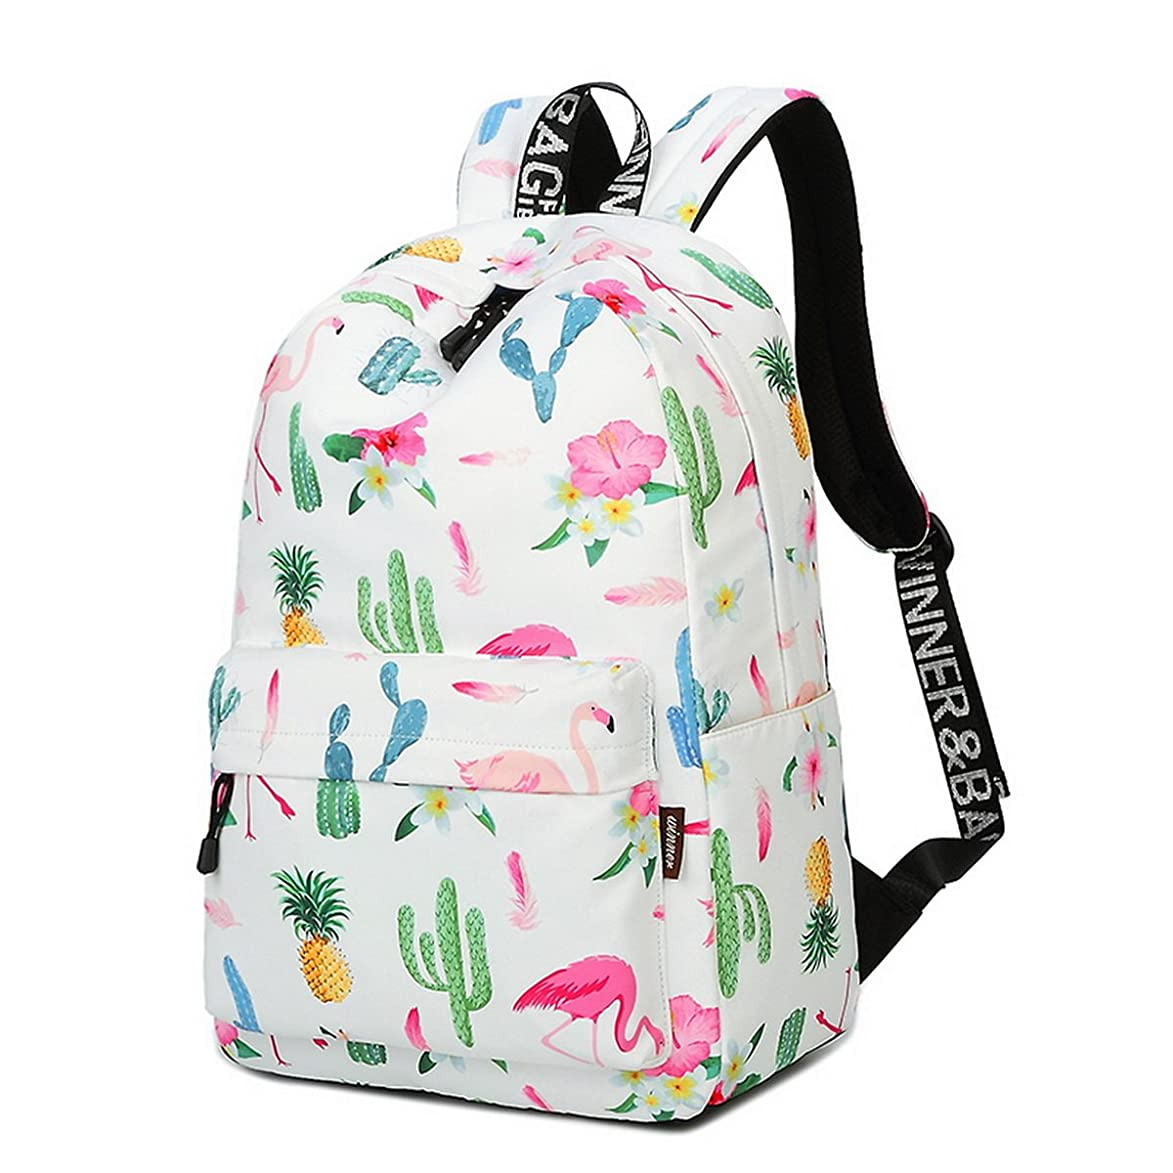 Acmebon Girls Fashion Printed Pattern Backpack Casual Student Backpack Fit 15.6